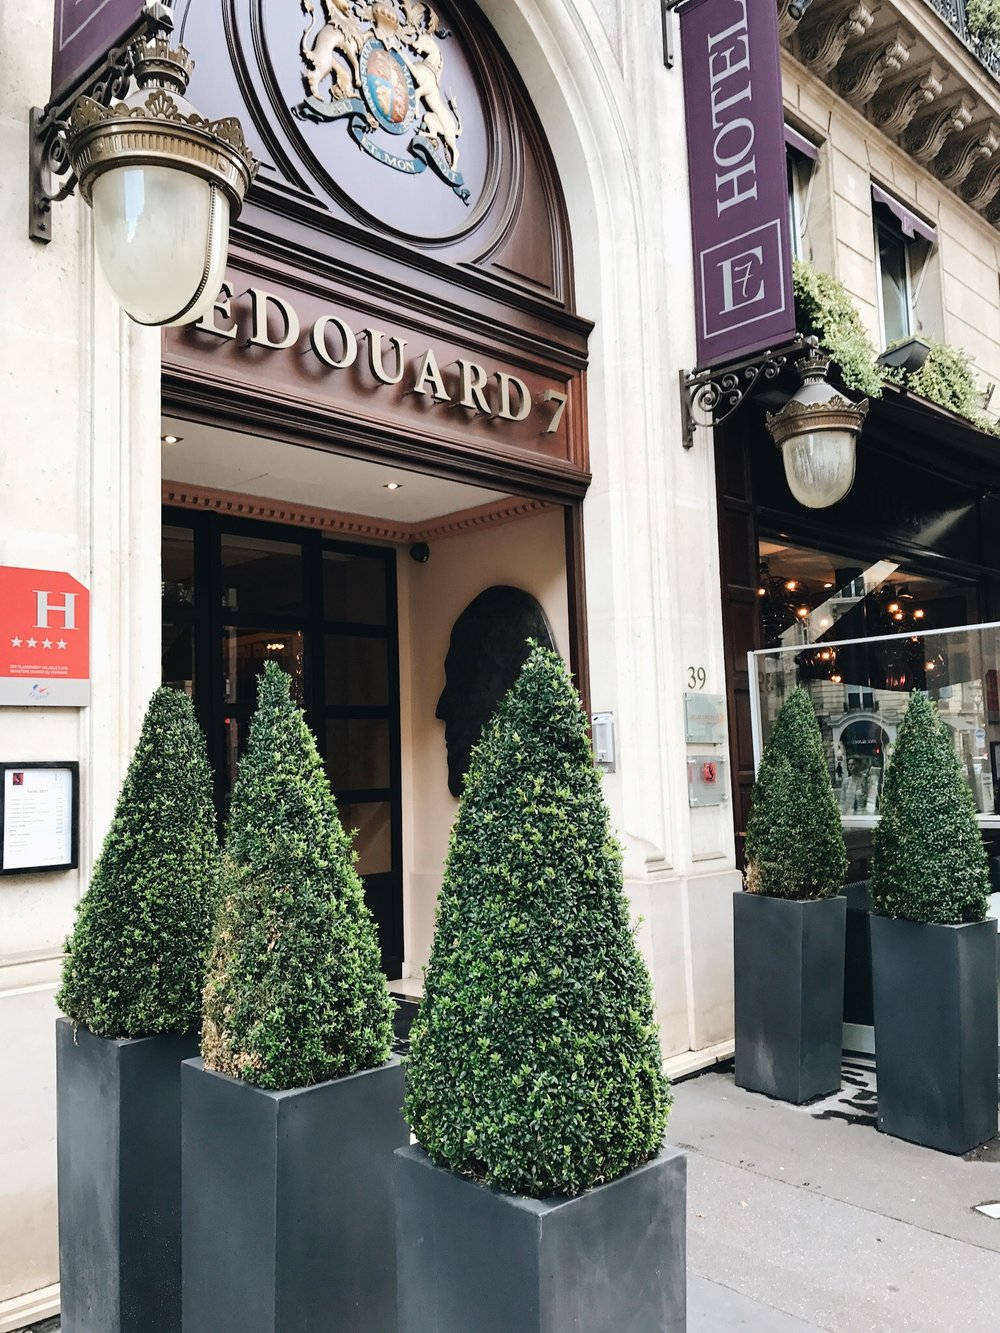 Hotel Edouard 7, Paris - Everyday Pursuits